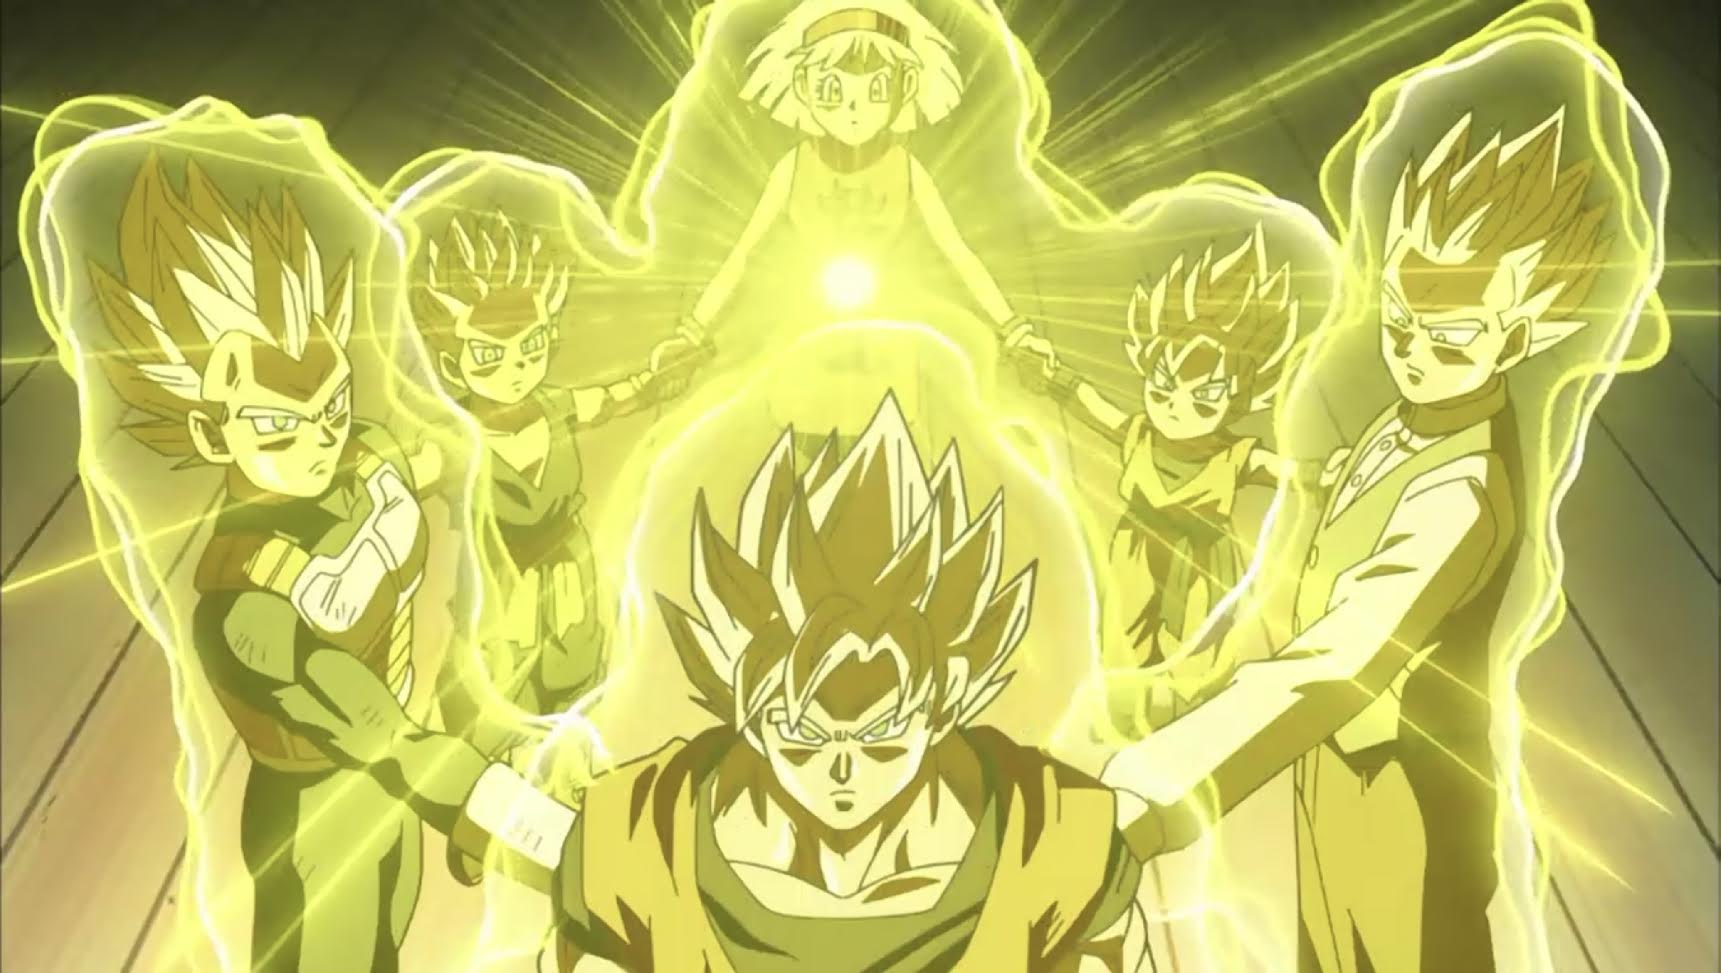 """Dragon Ball Super: Episode 9 """"Thanks For Waiting, Lord Beerus! A Super Saiyan God is Born at Last!"""" Review"""